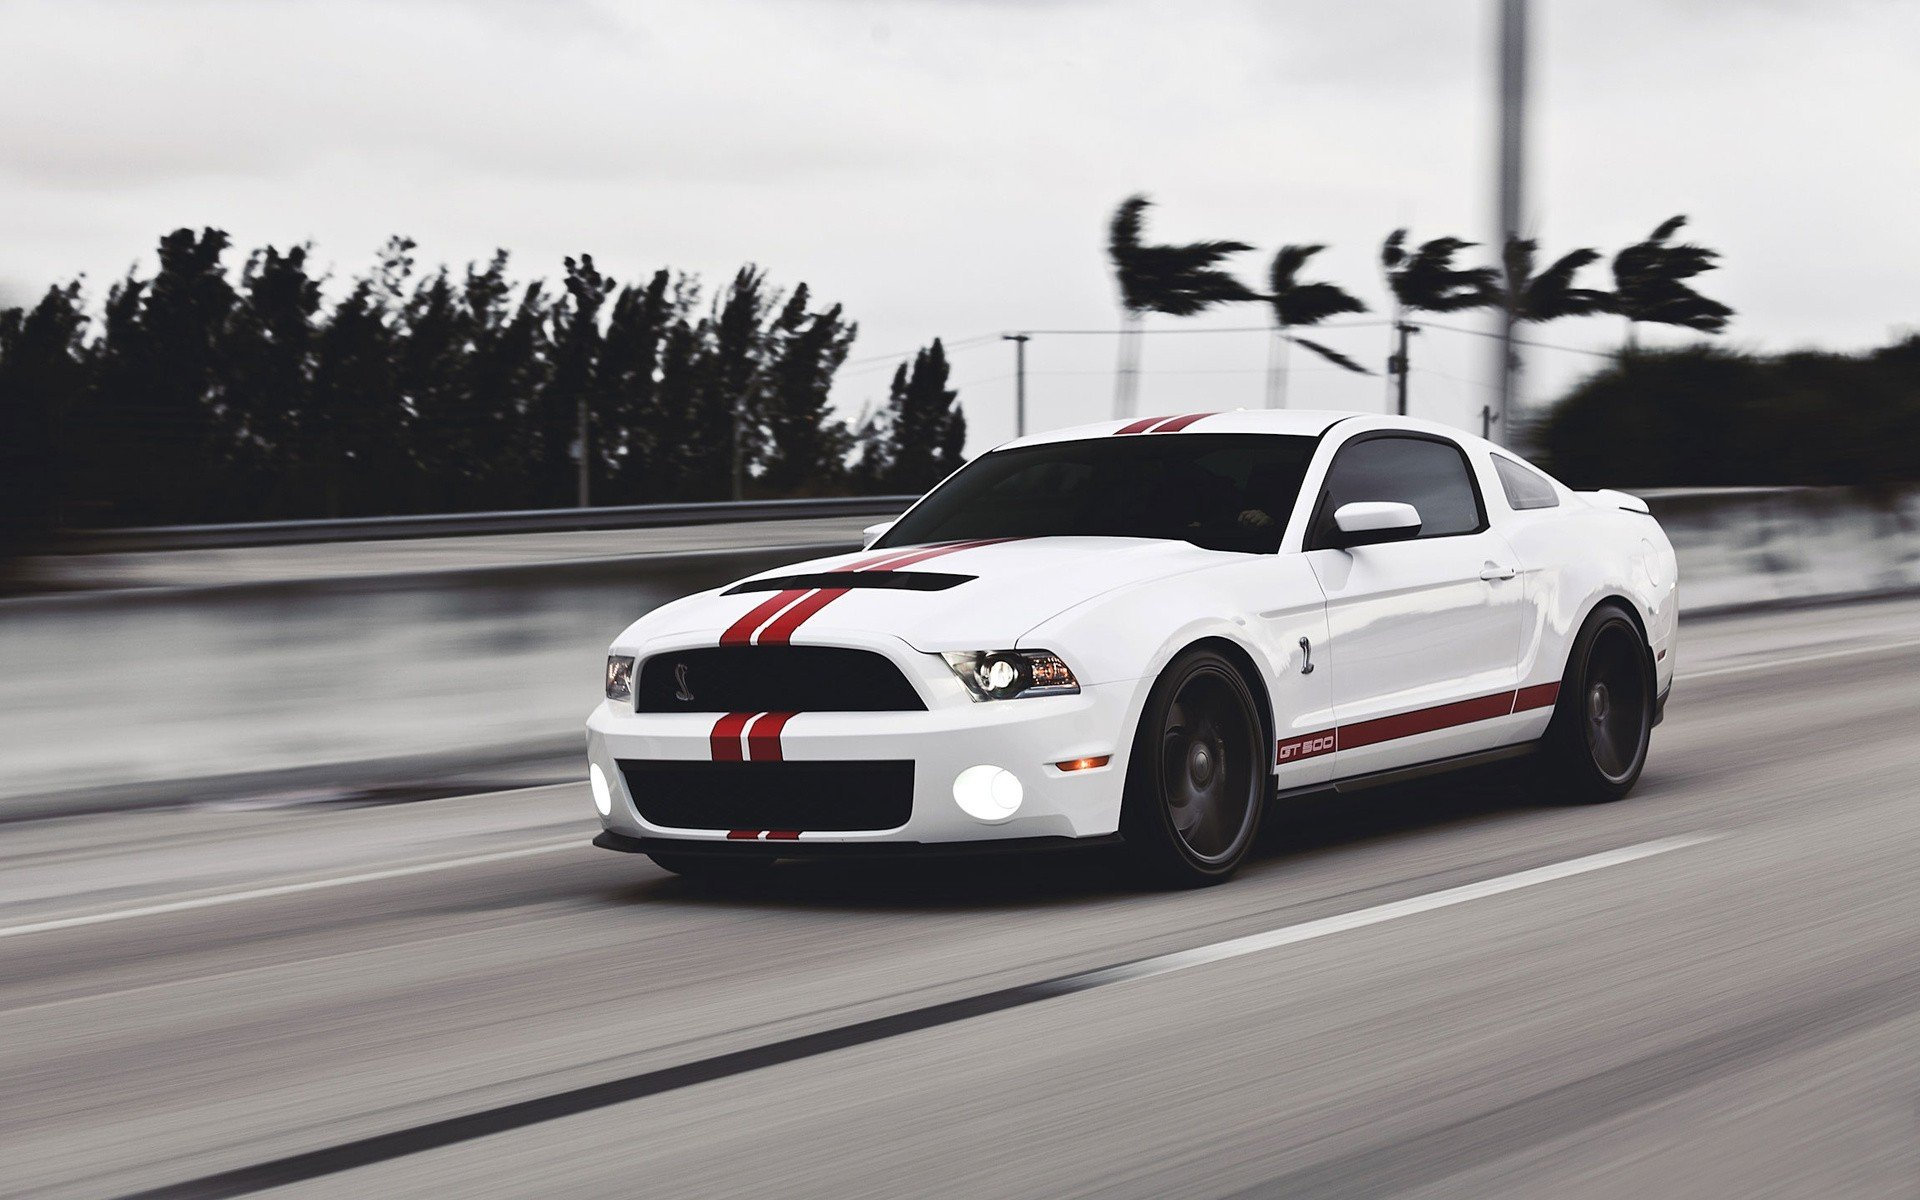 Black And White Cars Ford Ford Mustang Ford Mustang Shelby GT500 1920x1200